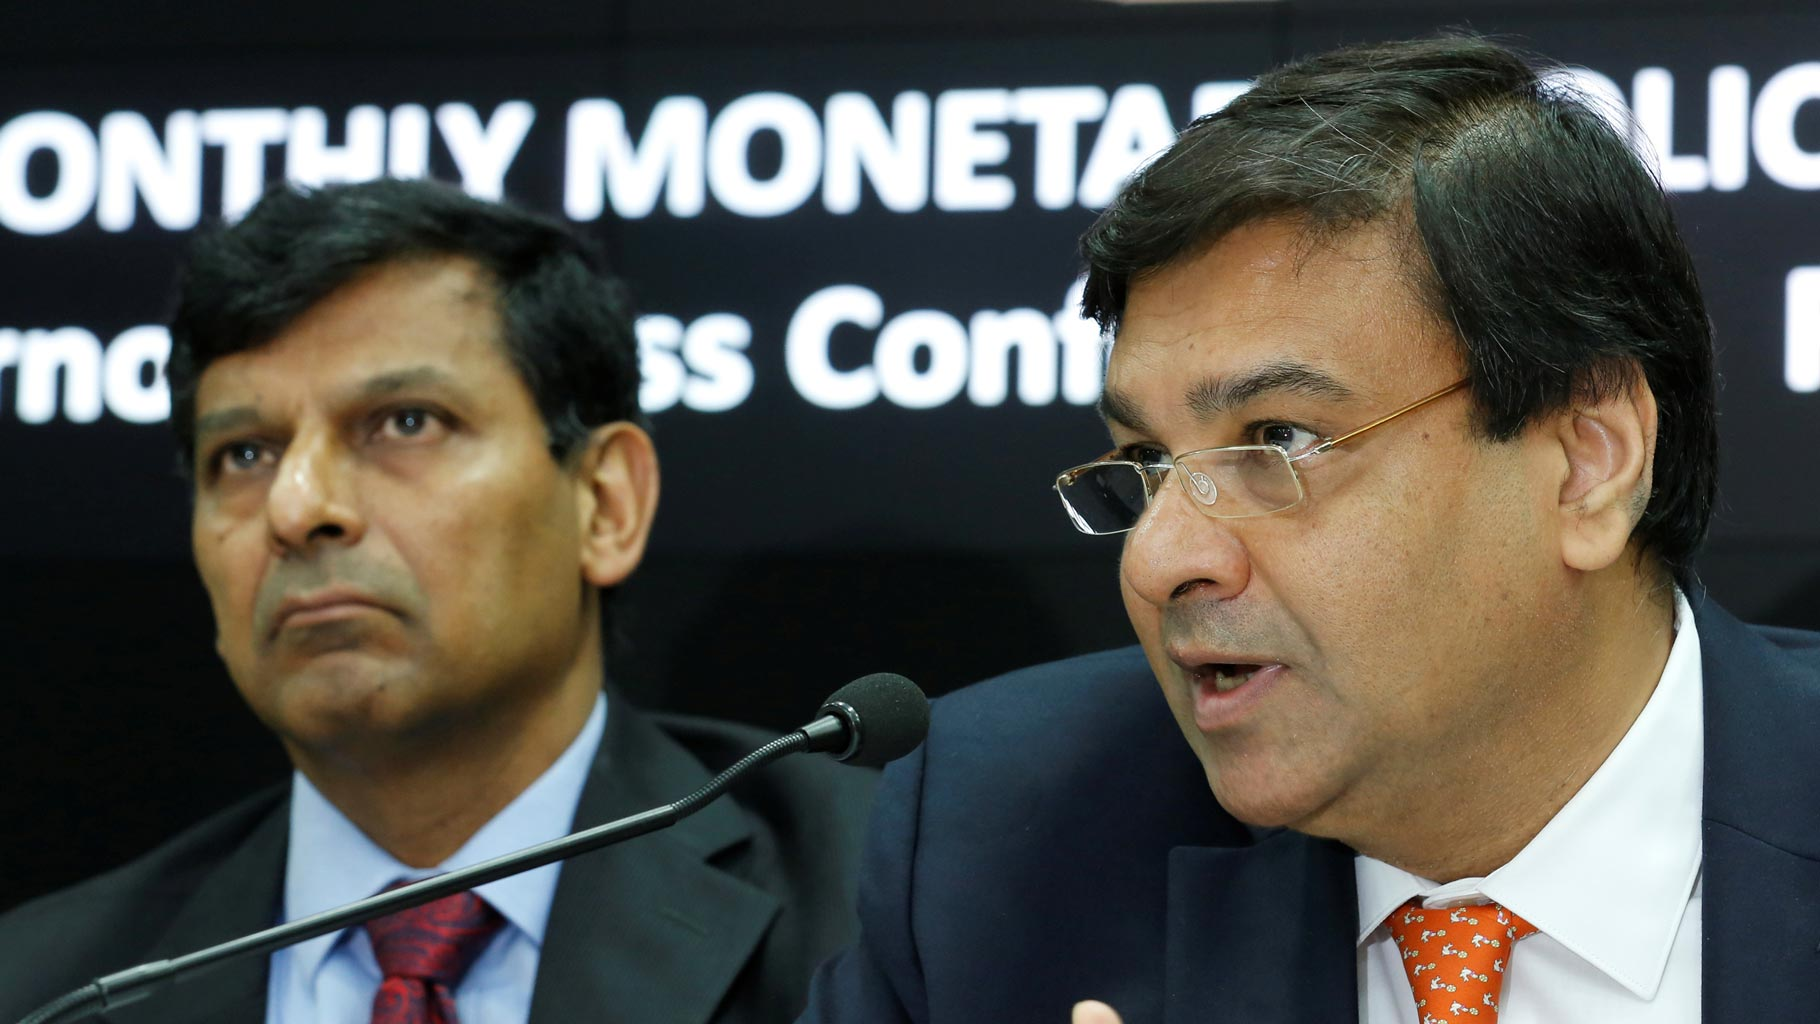 After Rate Cuts, How Will the RBI Tackle the Uncomfortable Issue of a Bad Bank?